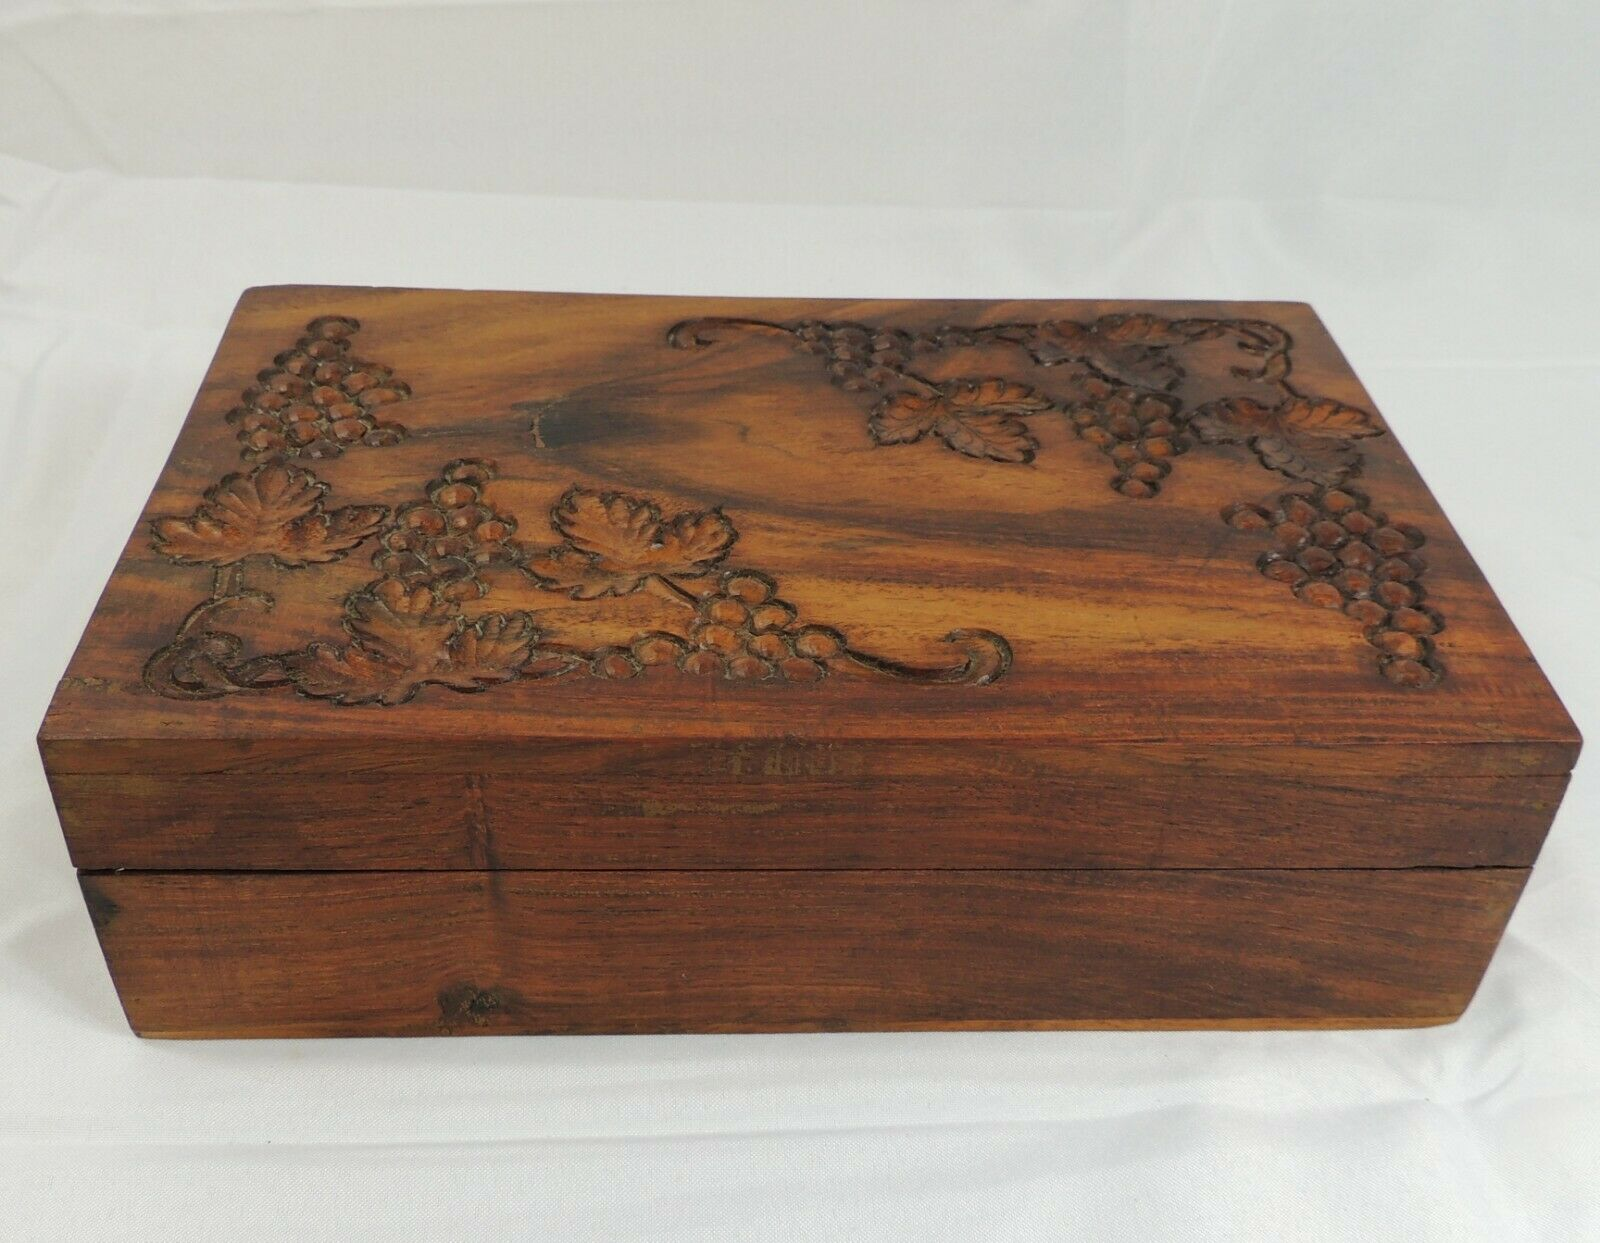 Grapevine & Grapes Carved Wood Hidden Hinged Storage Box Tea